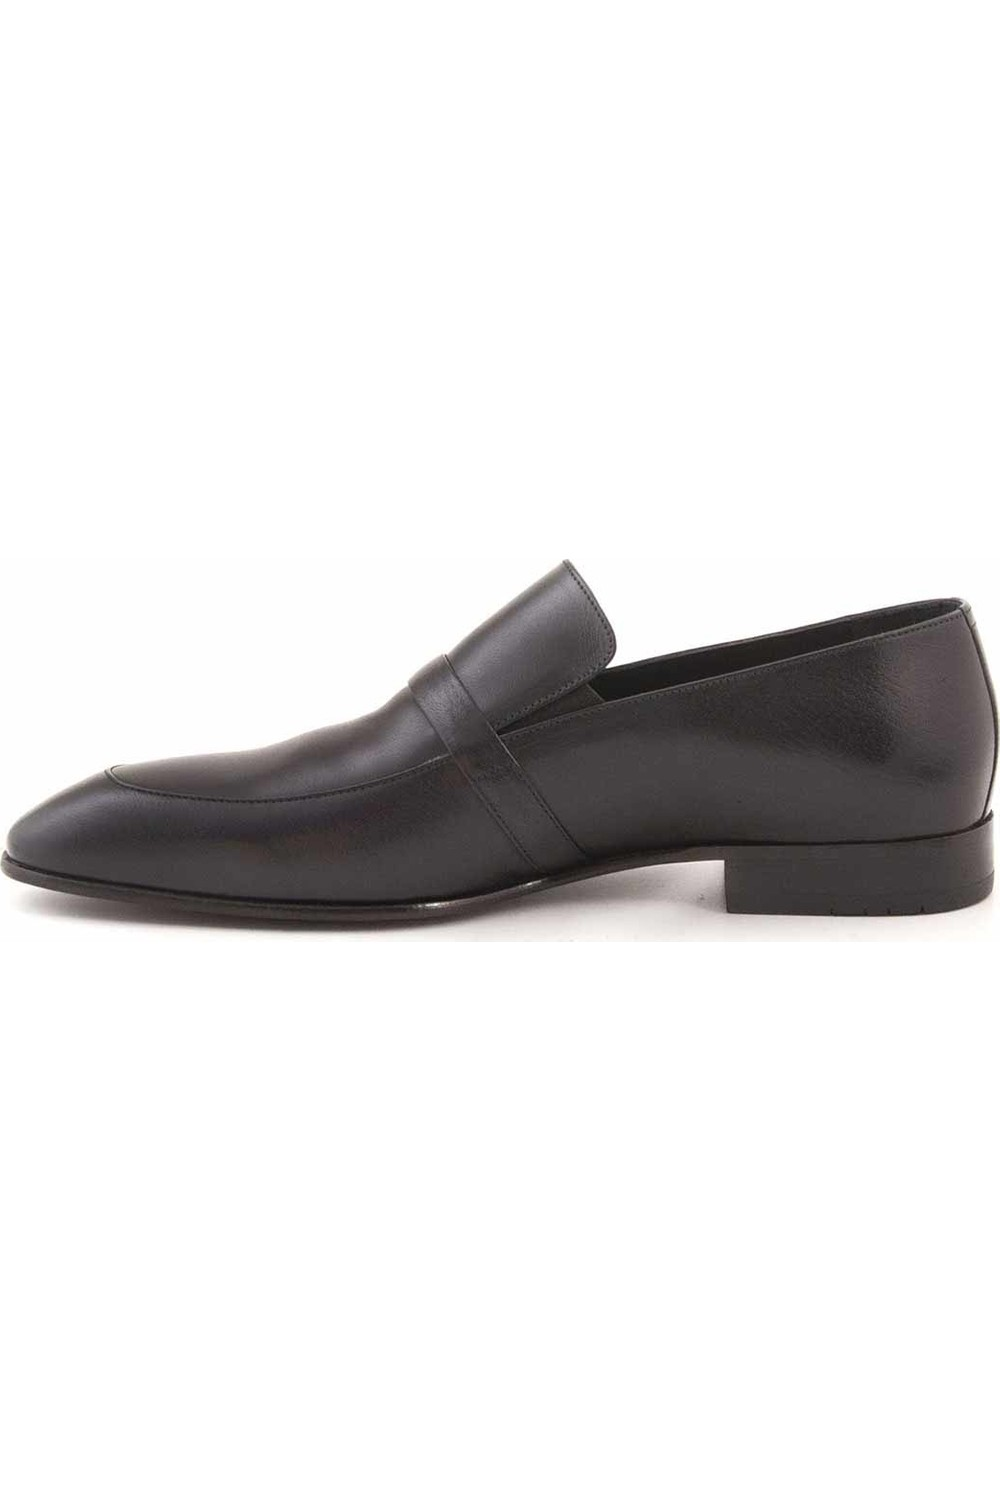 Kemal Tanca Men's Formal Shoes 7384-7